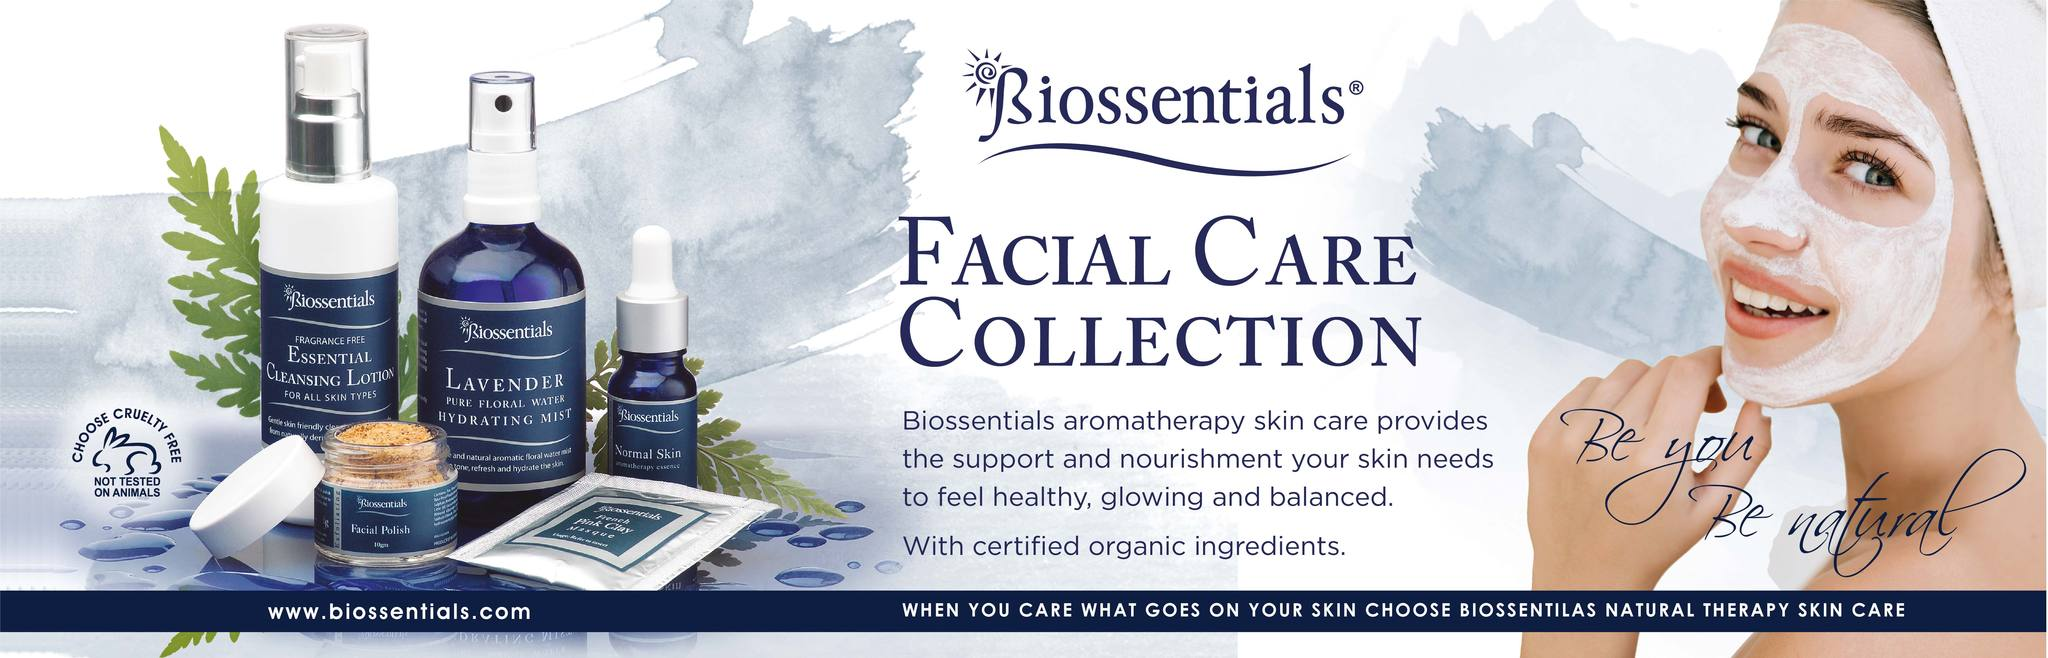 Biossentials Aromatherapy Collection